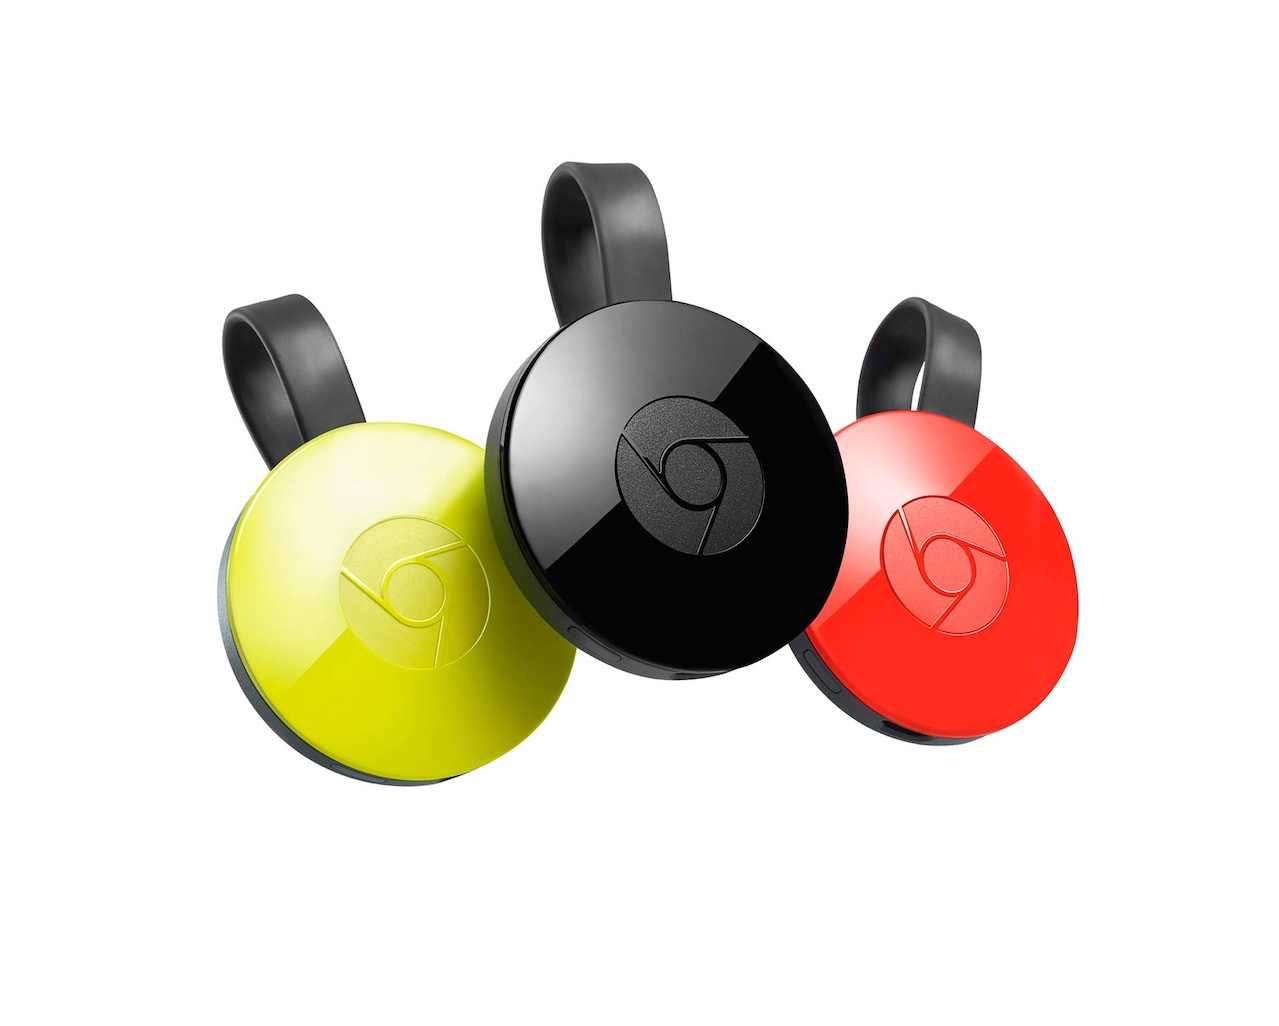 Chromecast is changing the way people consume digital entertainment.